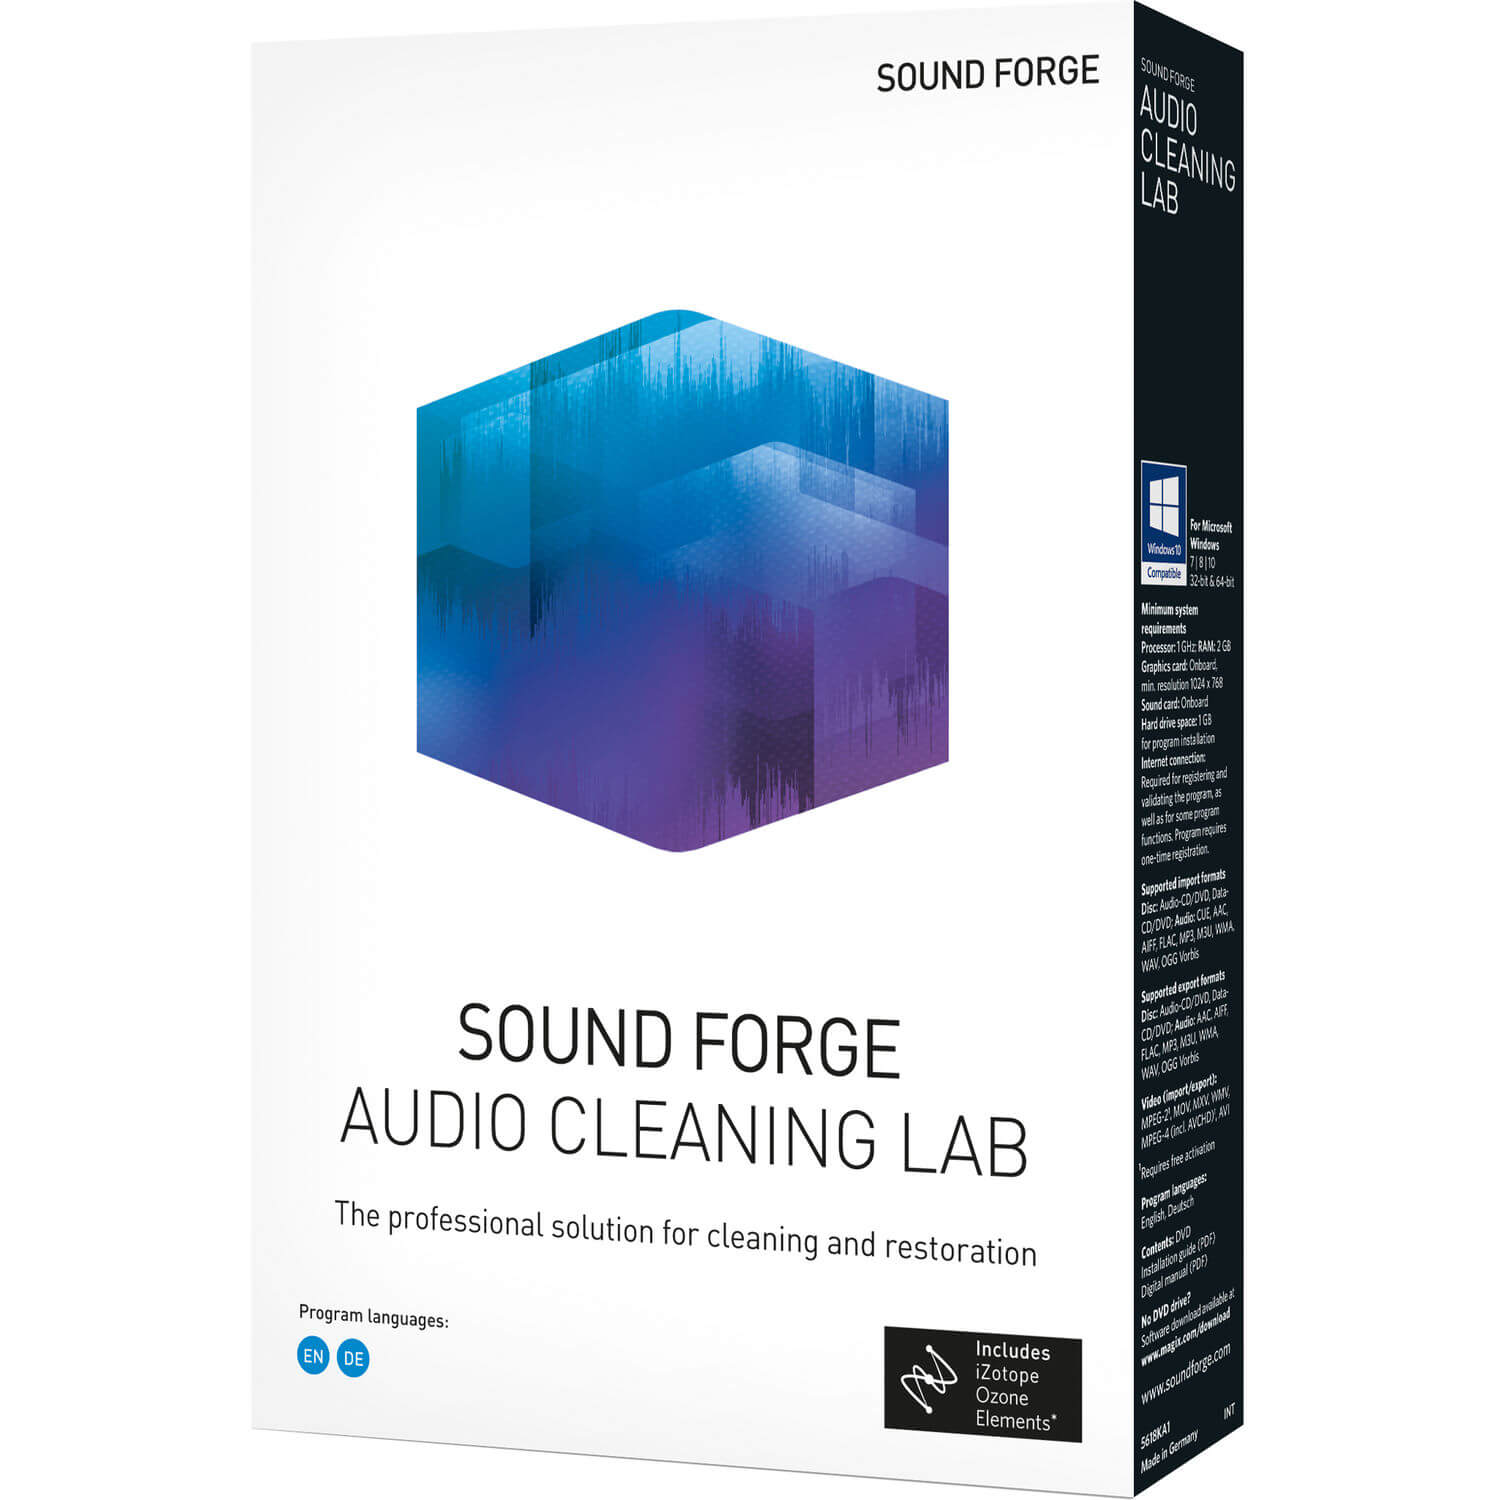 Magix Sound Forge Audio Cleaning Lab v25.0.1.23 Crack